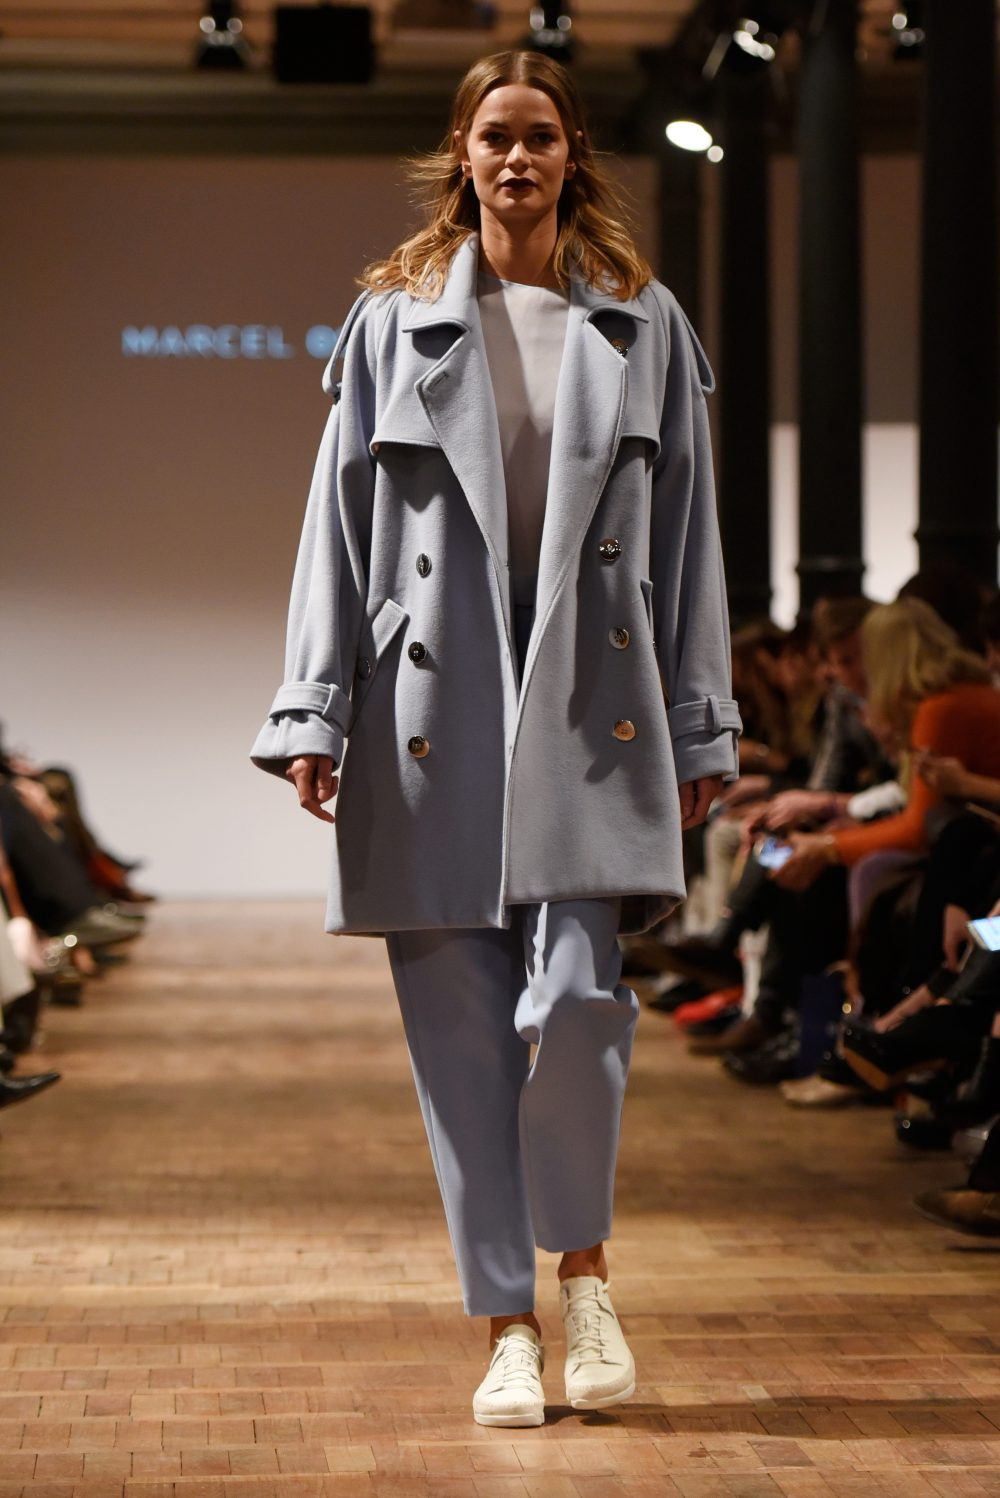 BERLIN, GERMANY - JANUARY  Marcel Ostertag show during the Mercedes-Benz Fashion Week Berlin Autumn/Winter 2016 (Photo by Clemens Bilan/Getty Images for Marcel Ostertag)